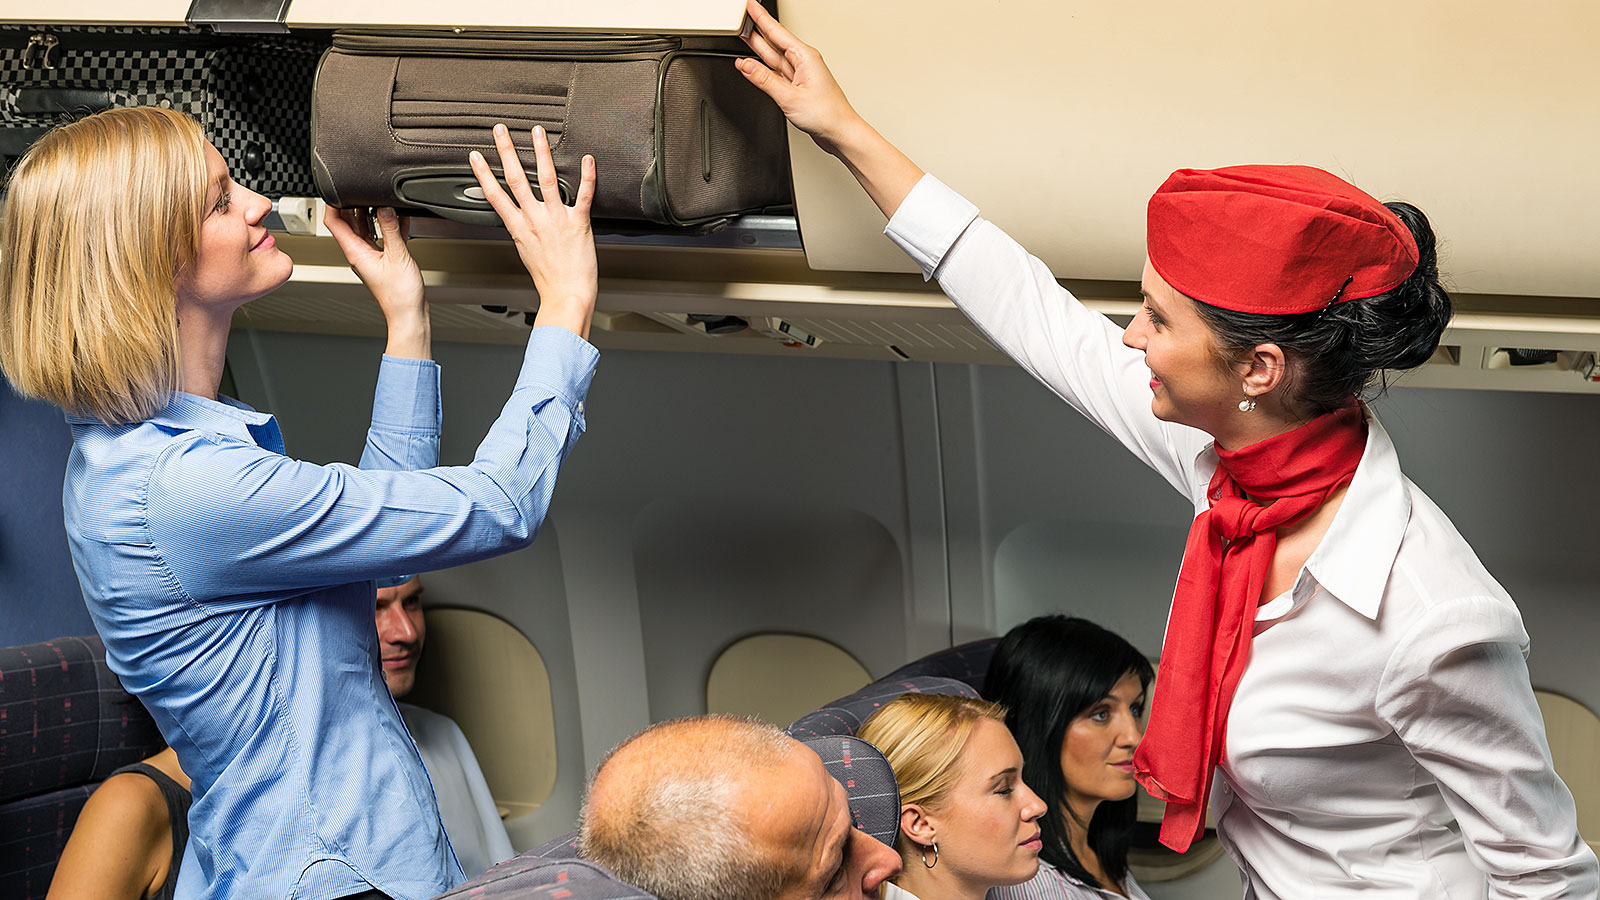 Flight attendants reveal 10 things they notice on a plane that you probably miss